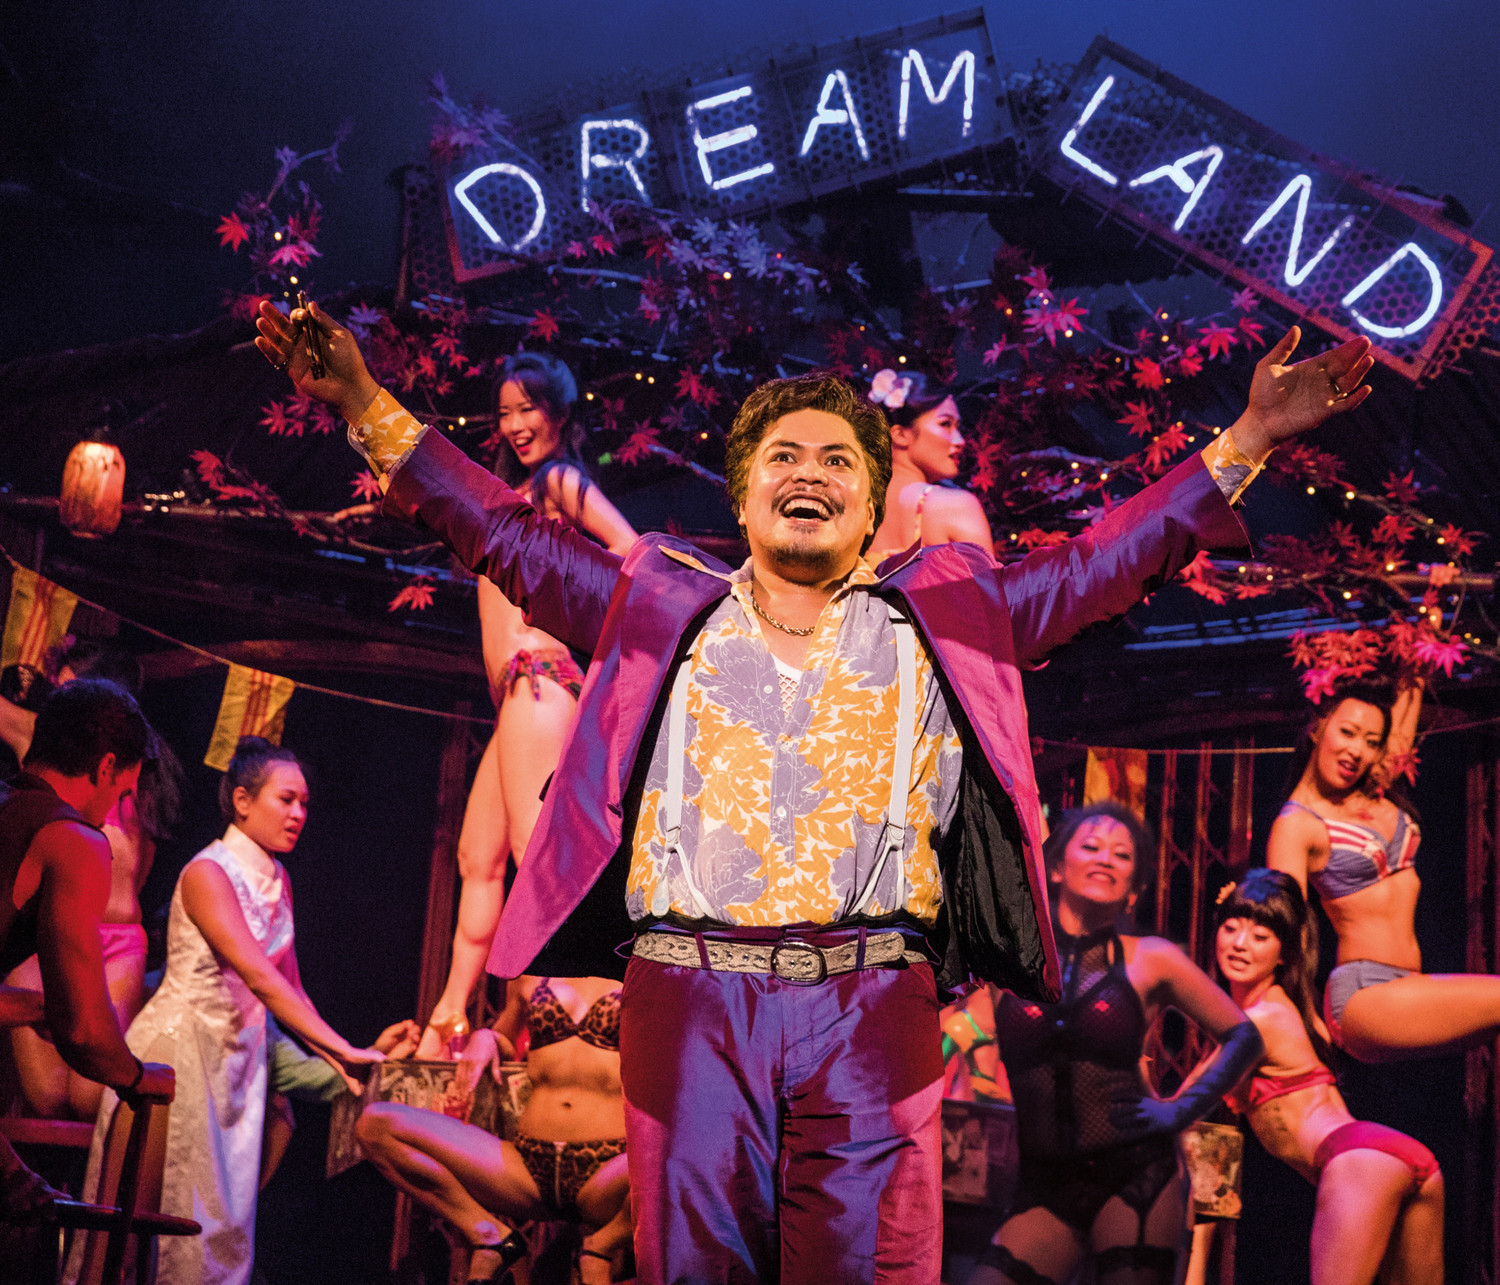 BWW Interview: MISS SAIGON'S Red Concepción Says this Grittier Version of the Show is Resonating with American Audiences